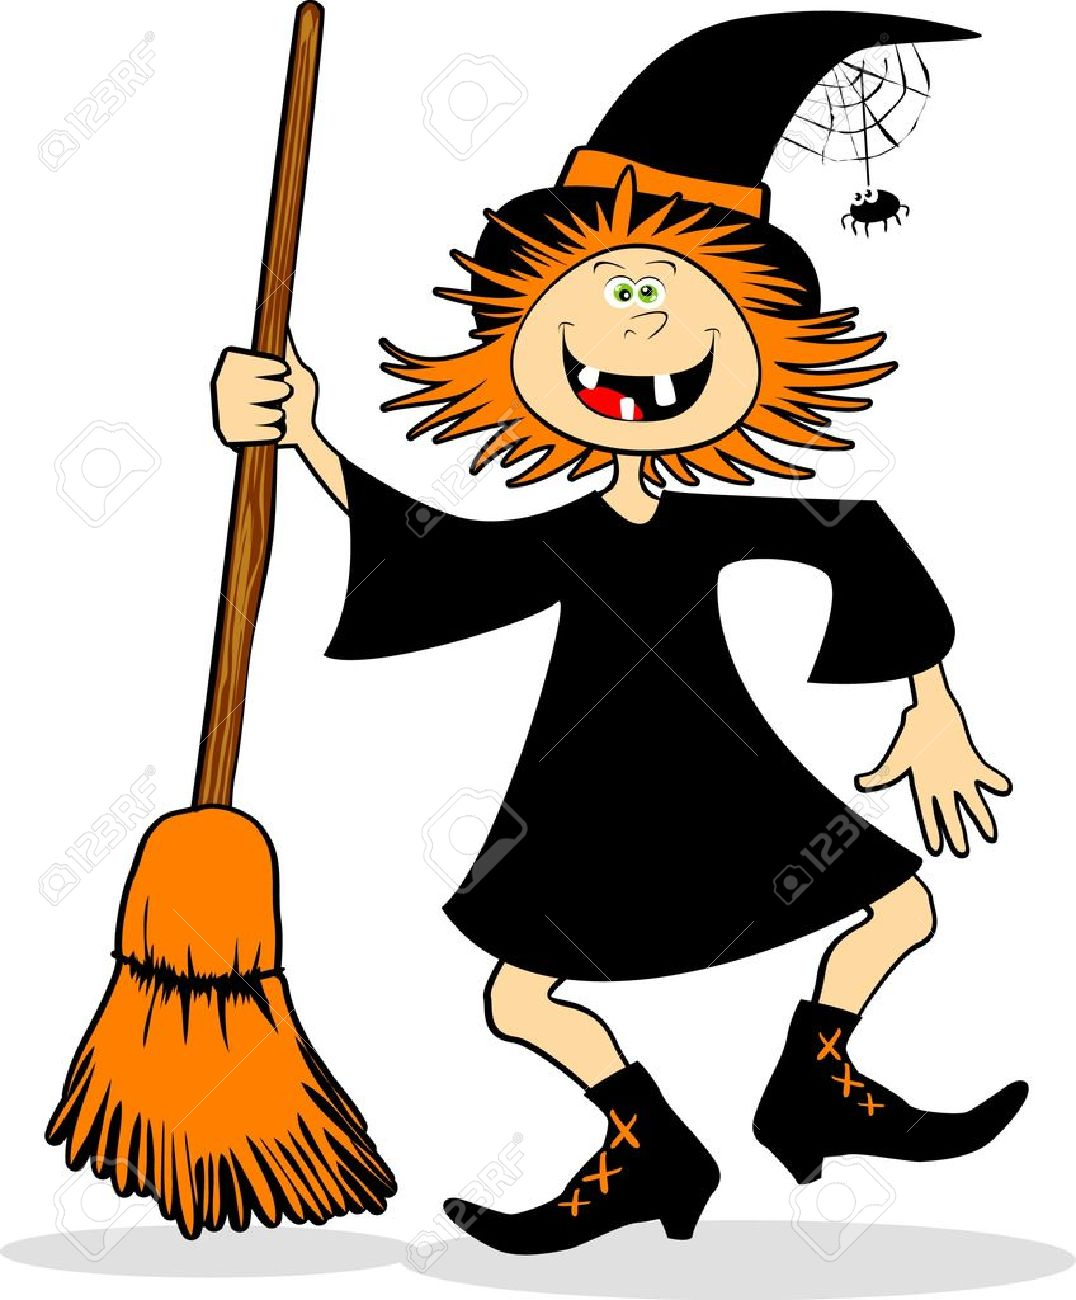 old witch a funny witch jumping the broom vector illustration - Halloween Witch Cartoon